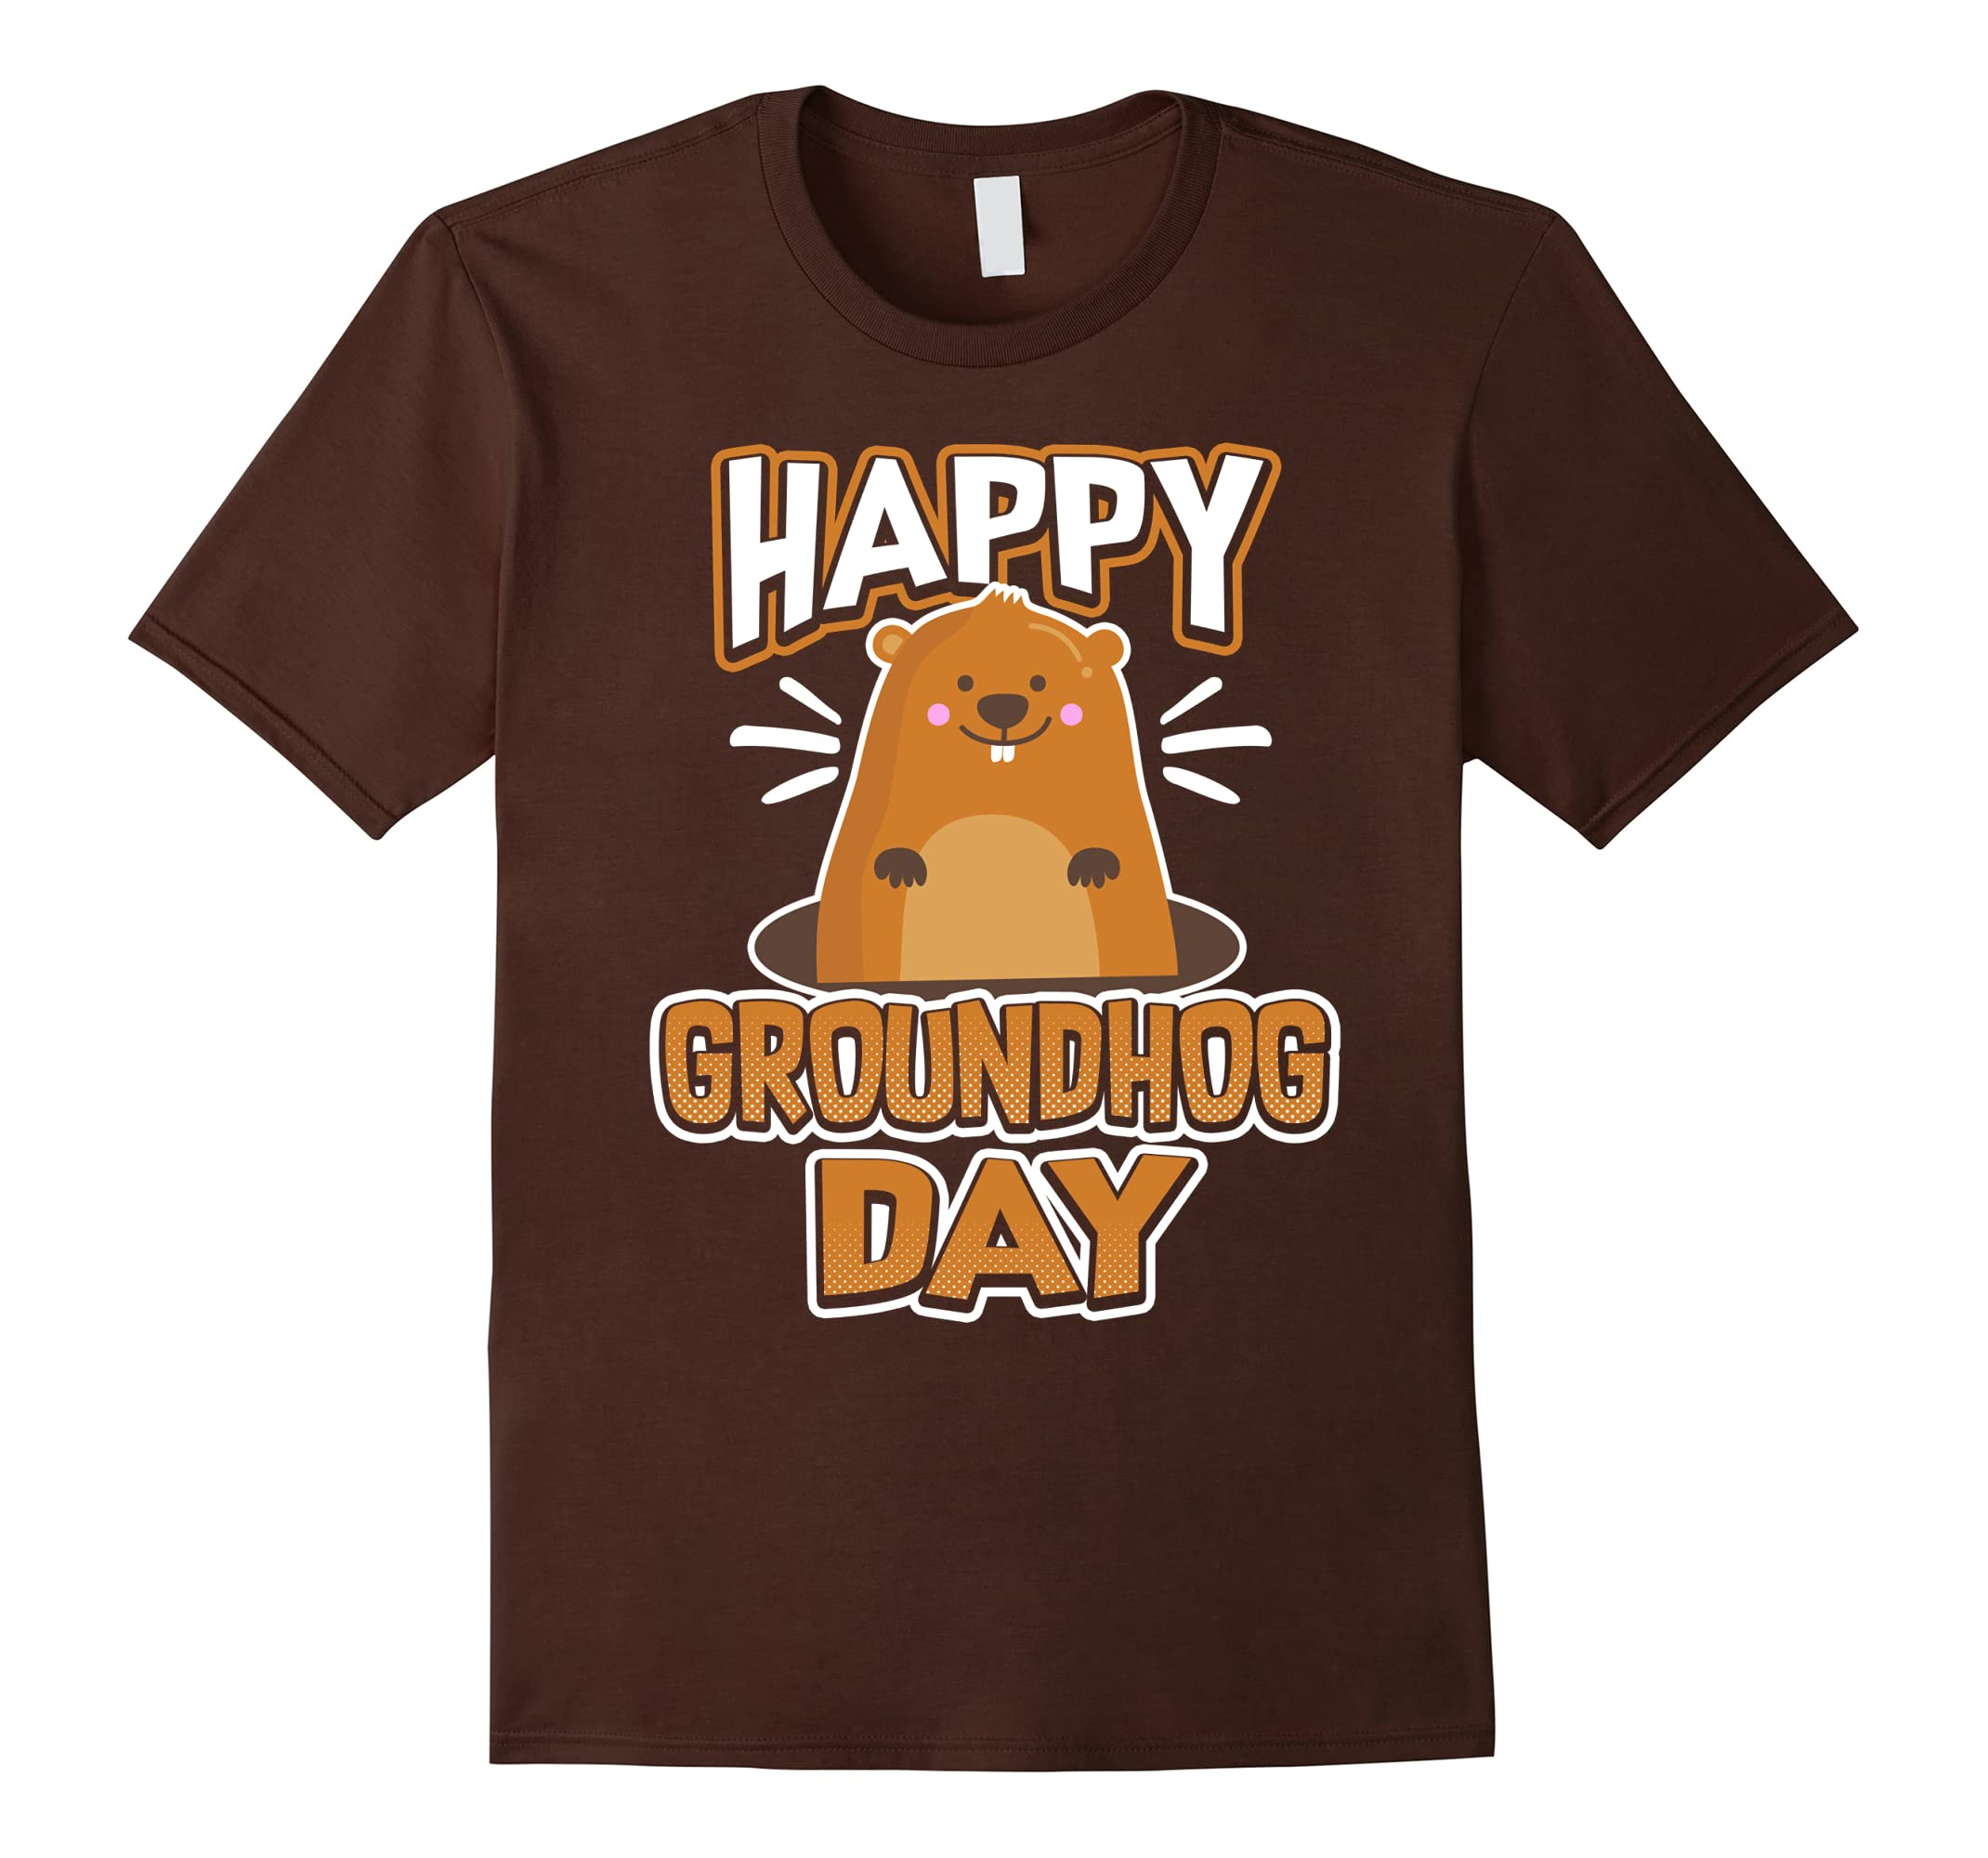 Happy Groundhog Day T-shirt for Men, Women, and Kids 2018-ah my shirt one gift